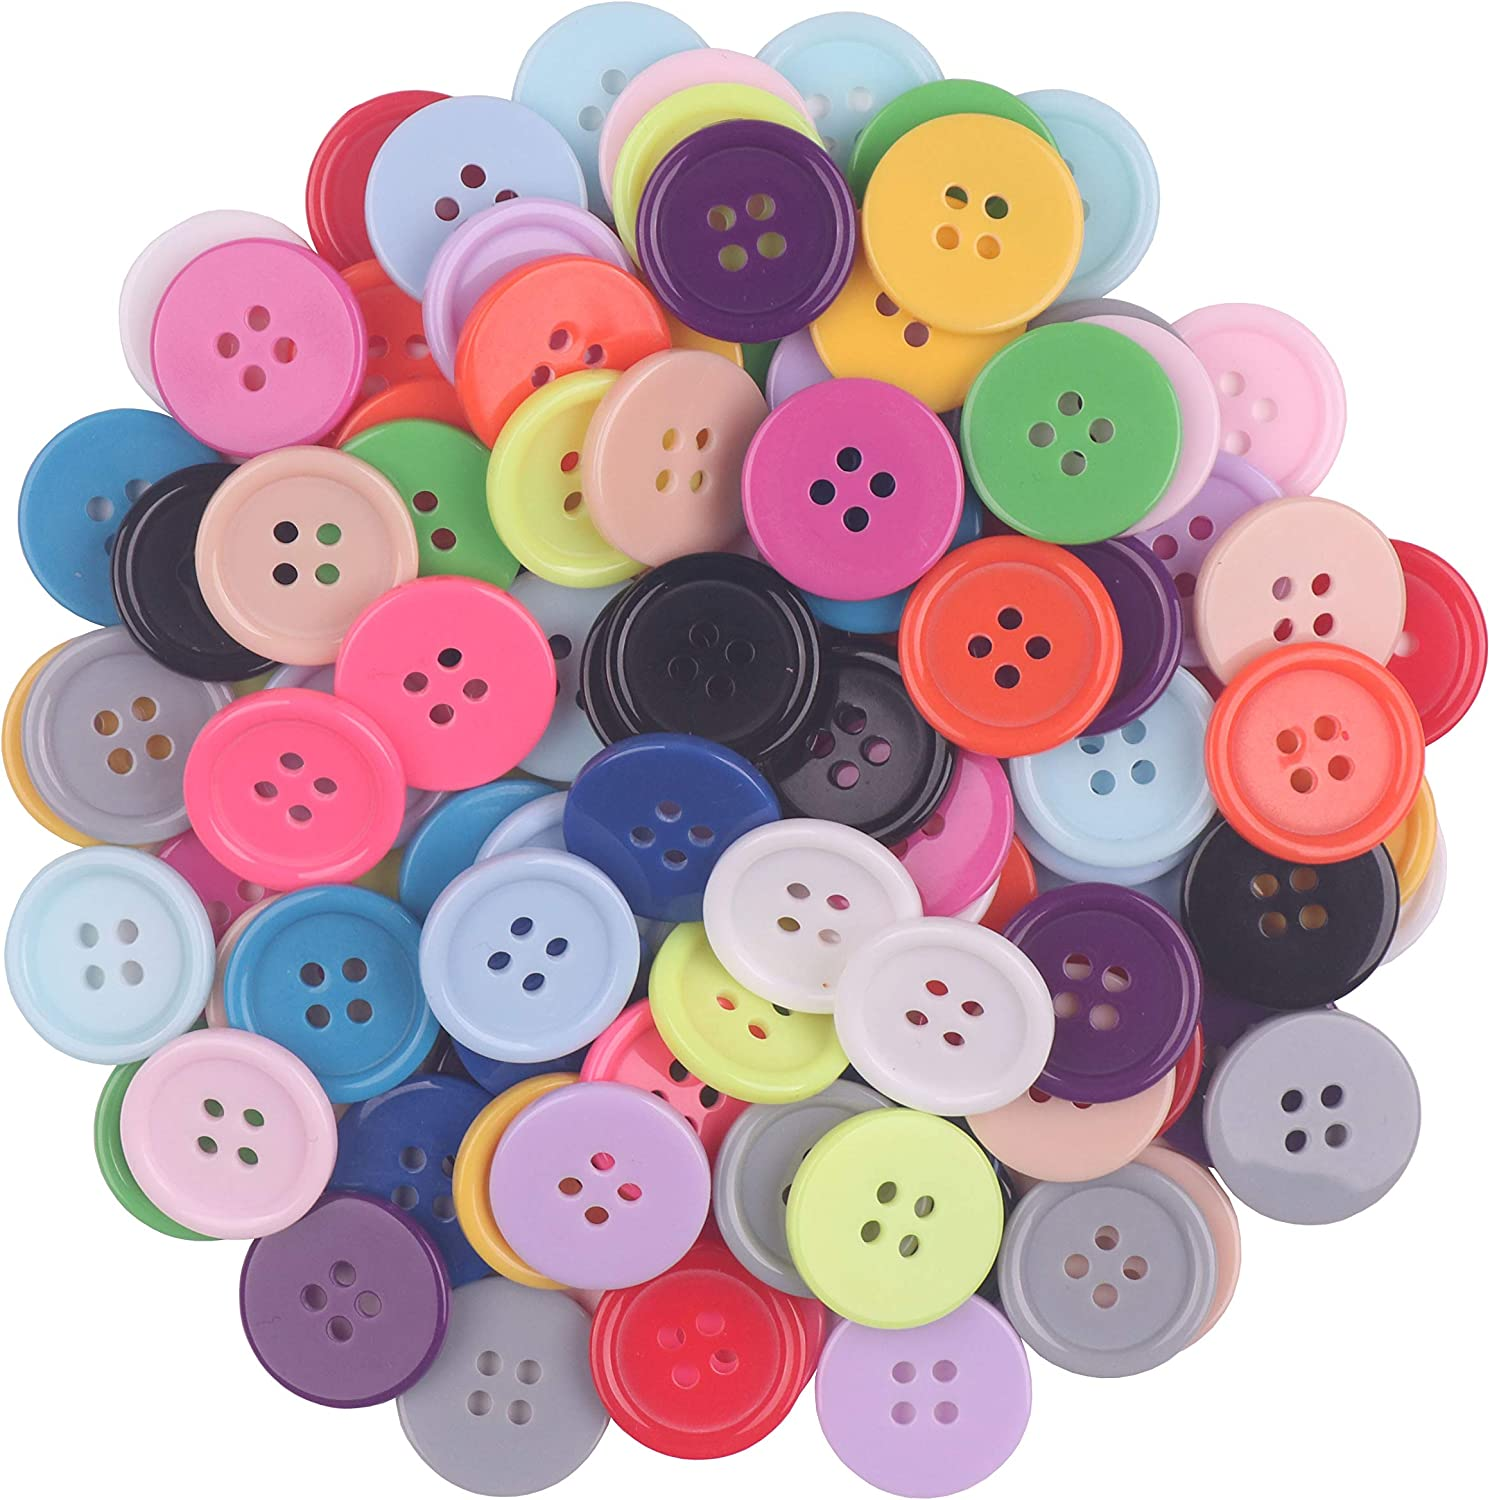 handmade crochet button two hole lava button Craft buttons set of 4 rectangular sewing button bead small clay button crafting buttons